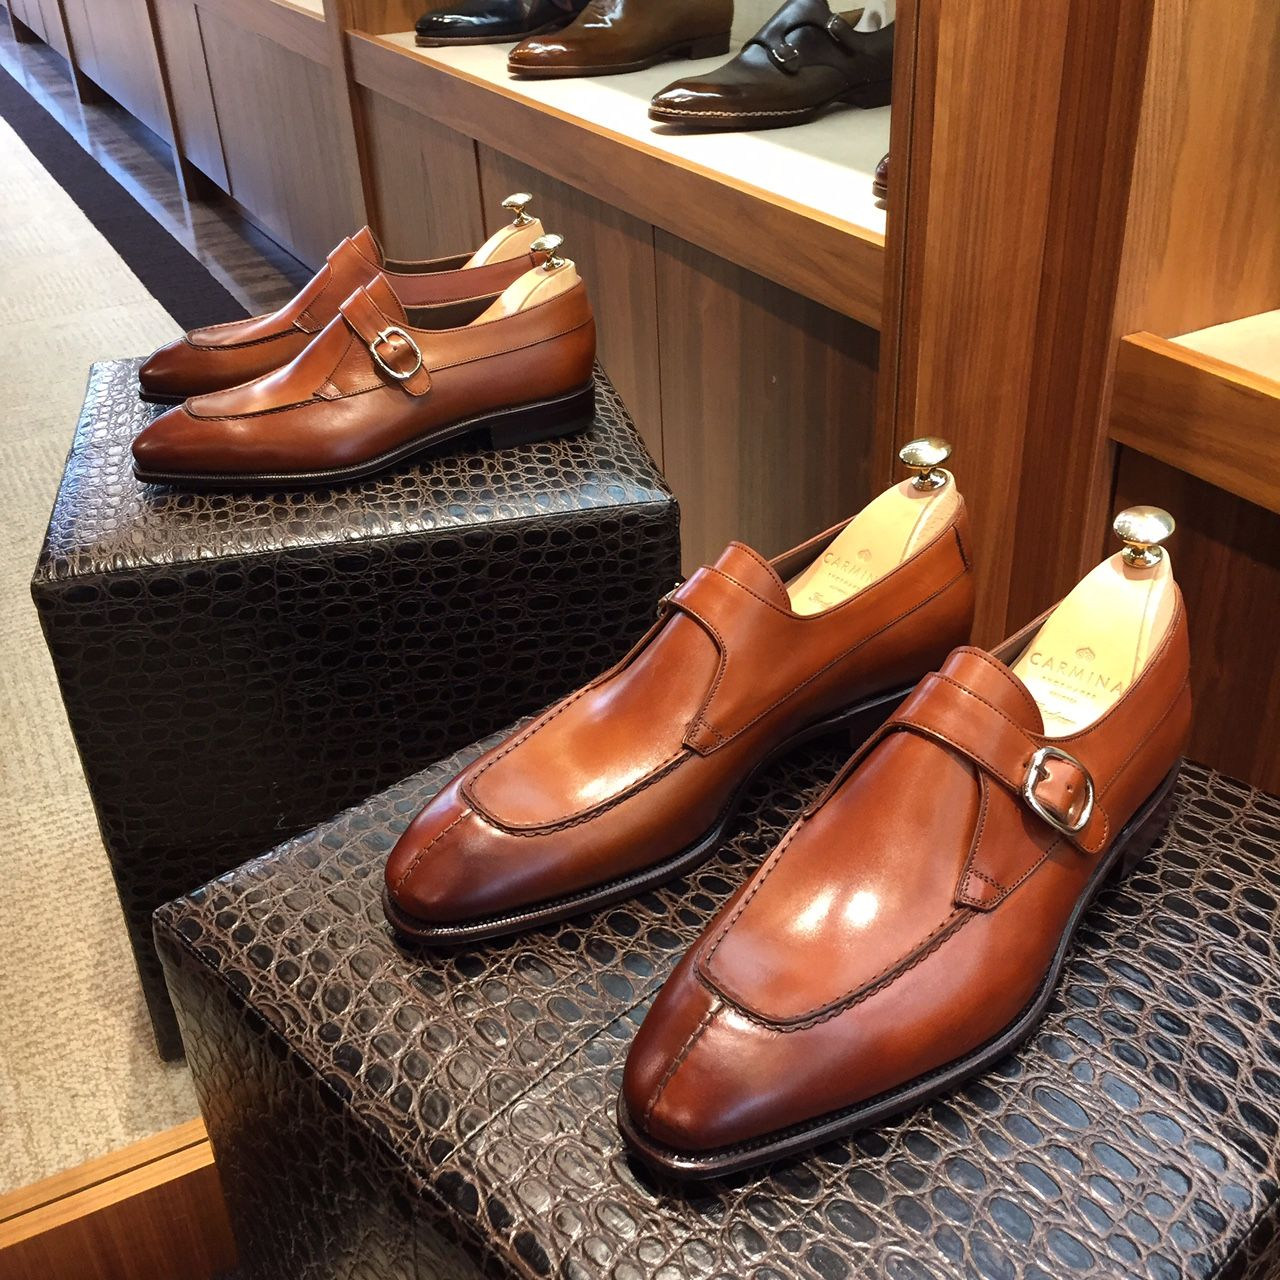 """leatherfootshoes: """"Last pair of Carmina single monks model #80180 features a semi-chiseled split toe on the simpson last, supple cognac french calfskin, and an apron. Size 10 UK. On sale for $390 CAD..."""